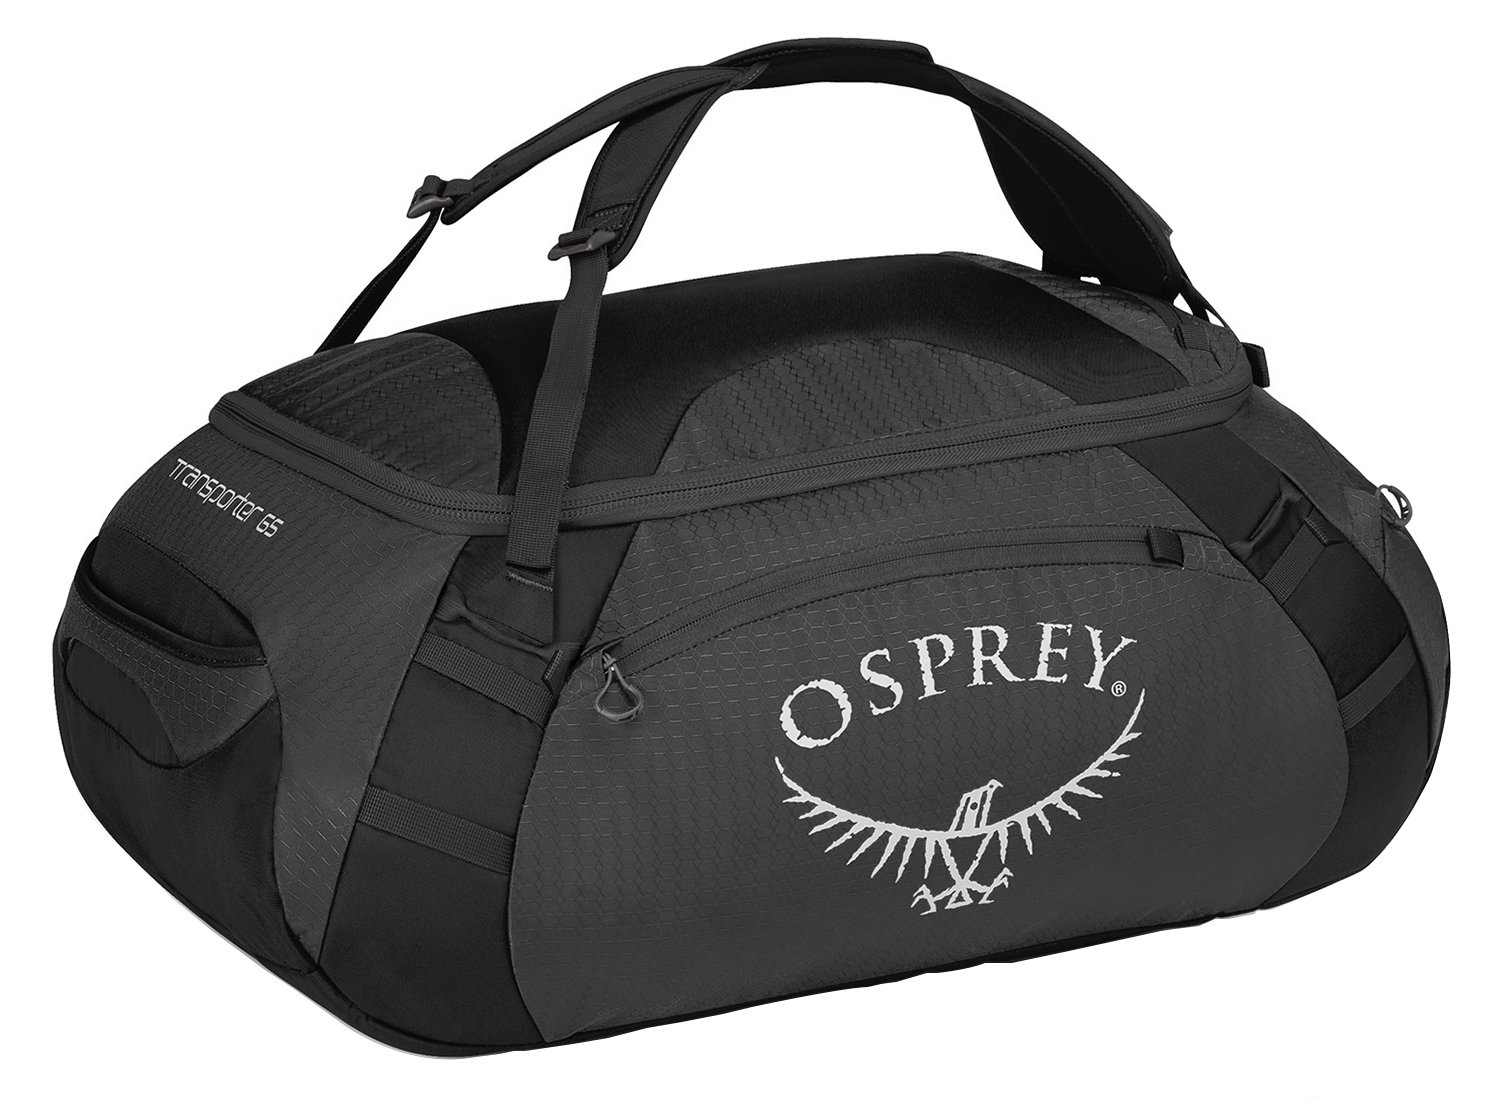 Osprey - Transporter 65, Color Anvil Grey: Amazon.es: Deportes y ...